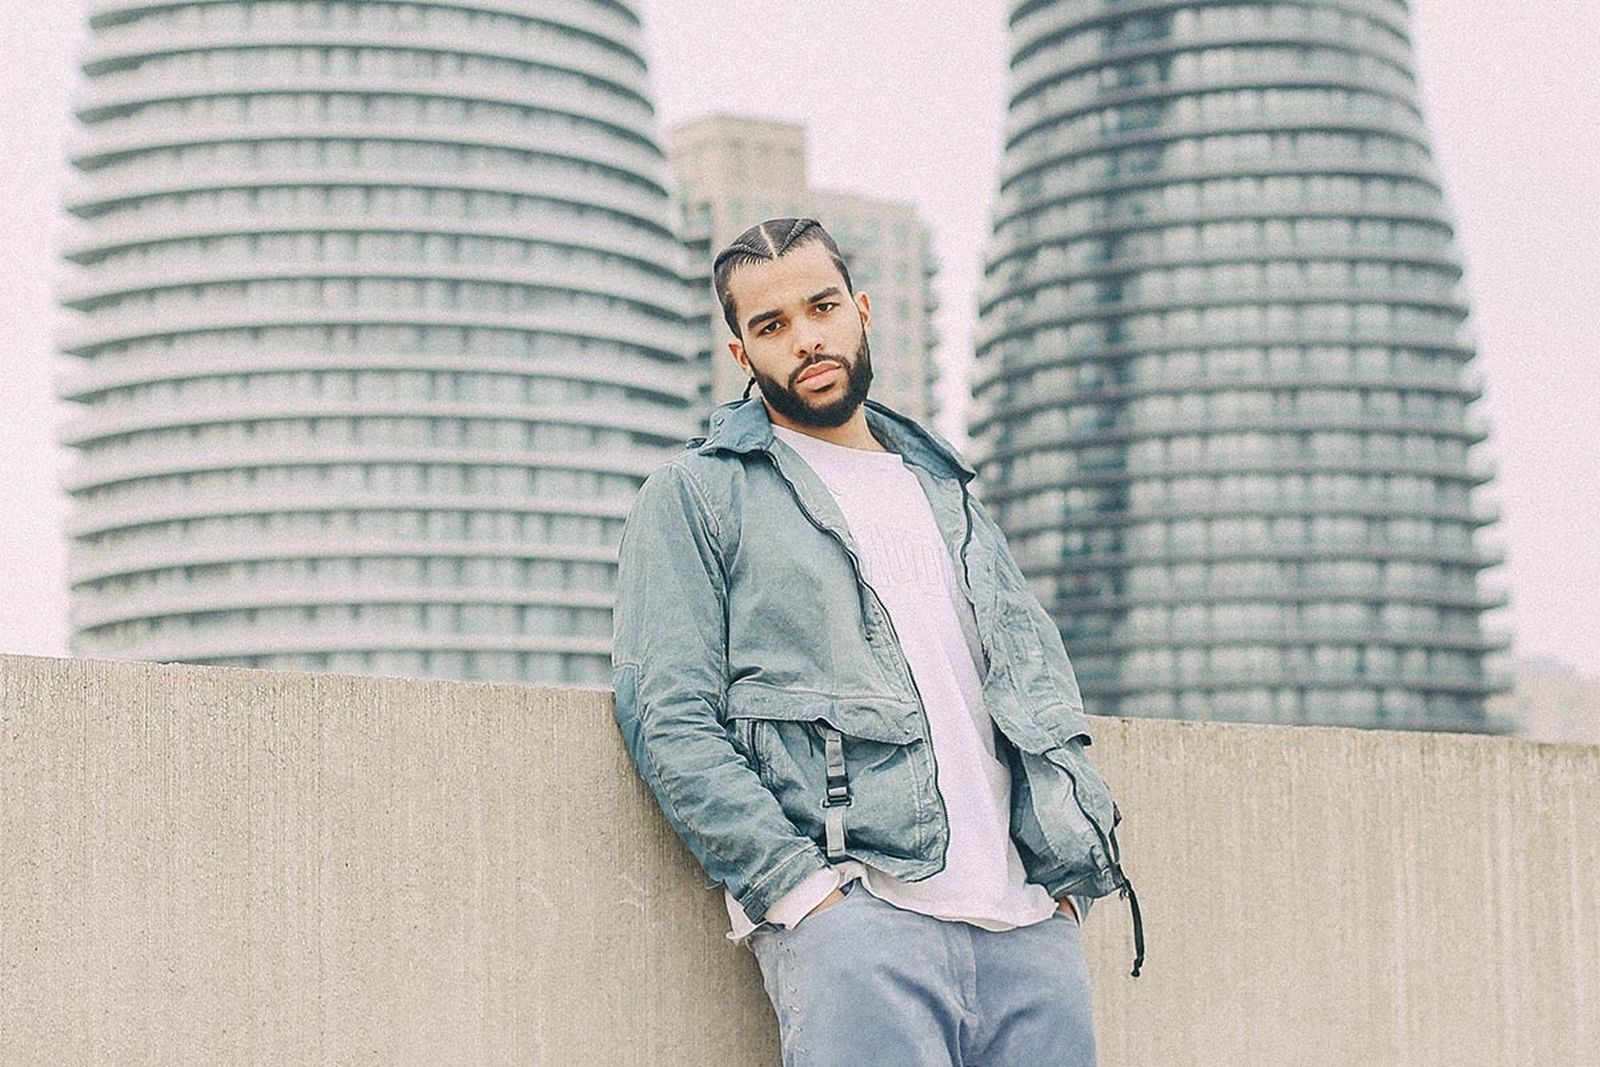 Actor and musician AJ Saudin wears the new M.T.t.N. Goggle Jacket from C.P. Company's SS20 collection.